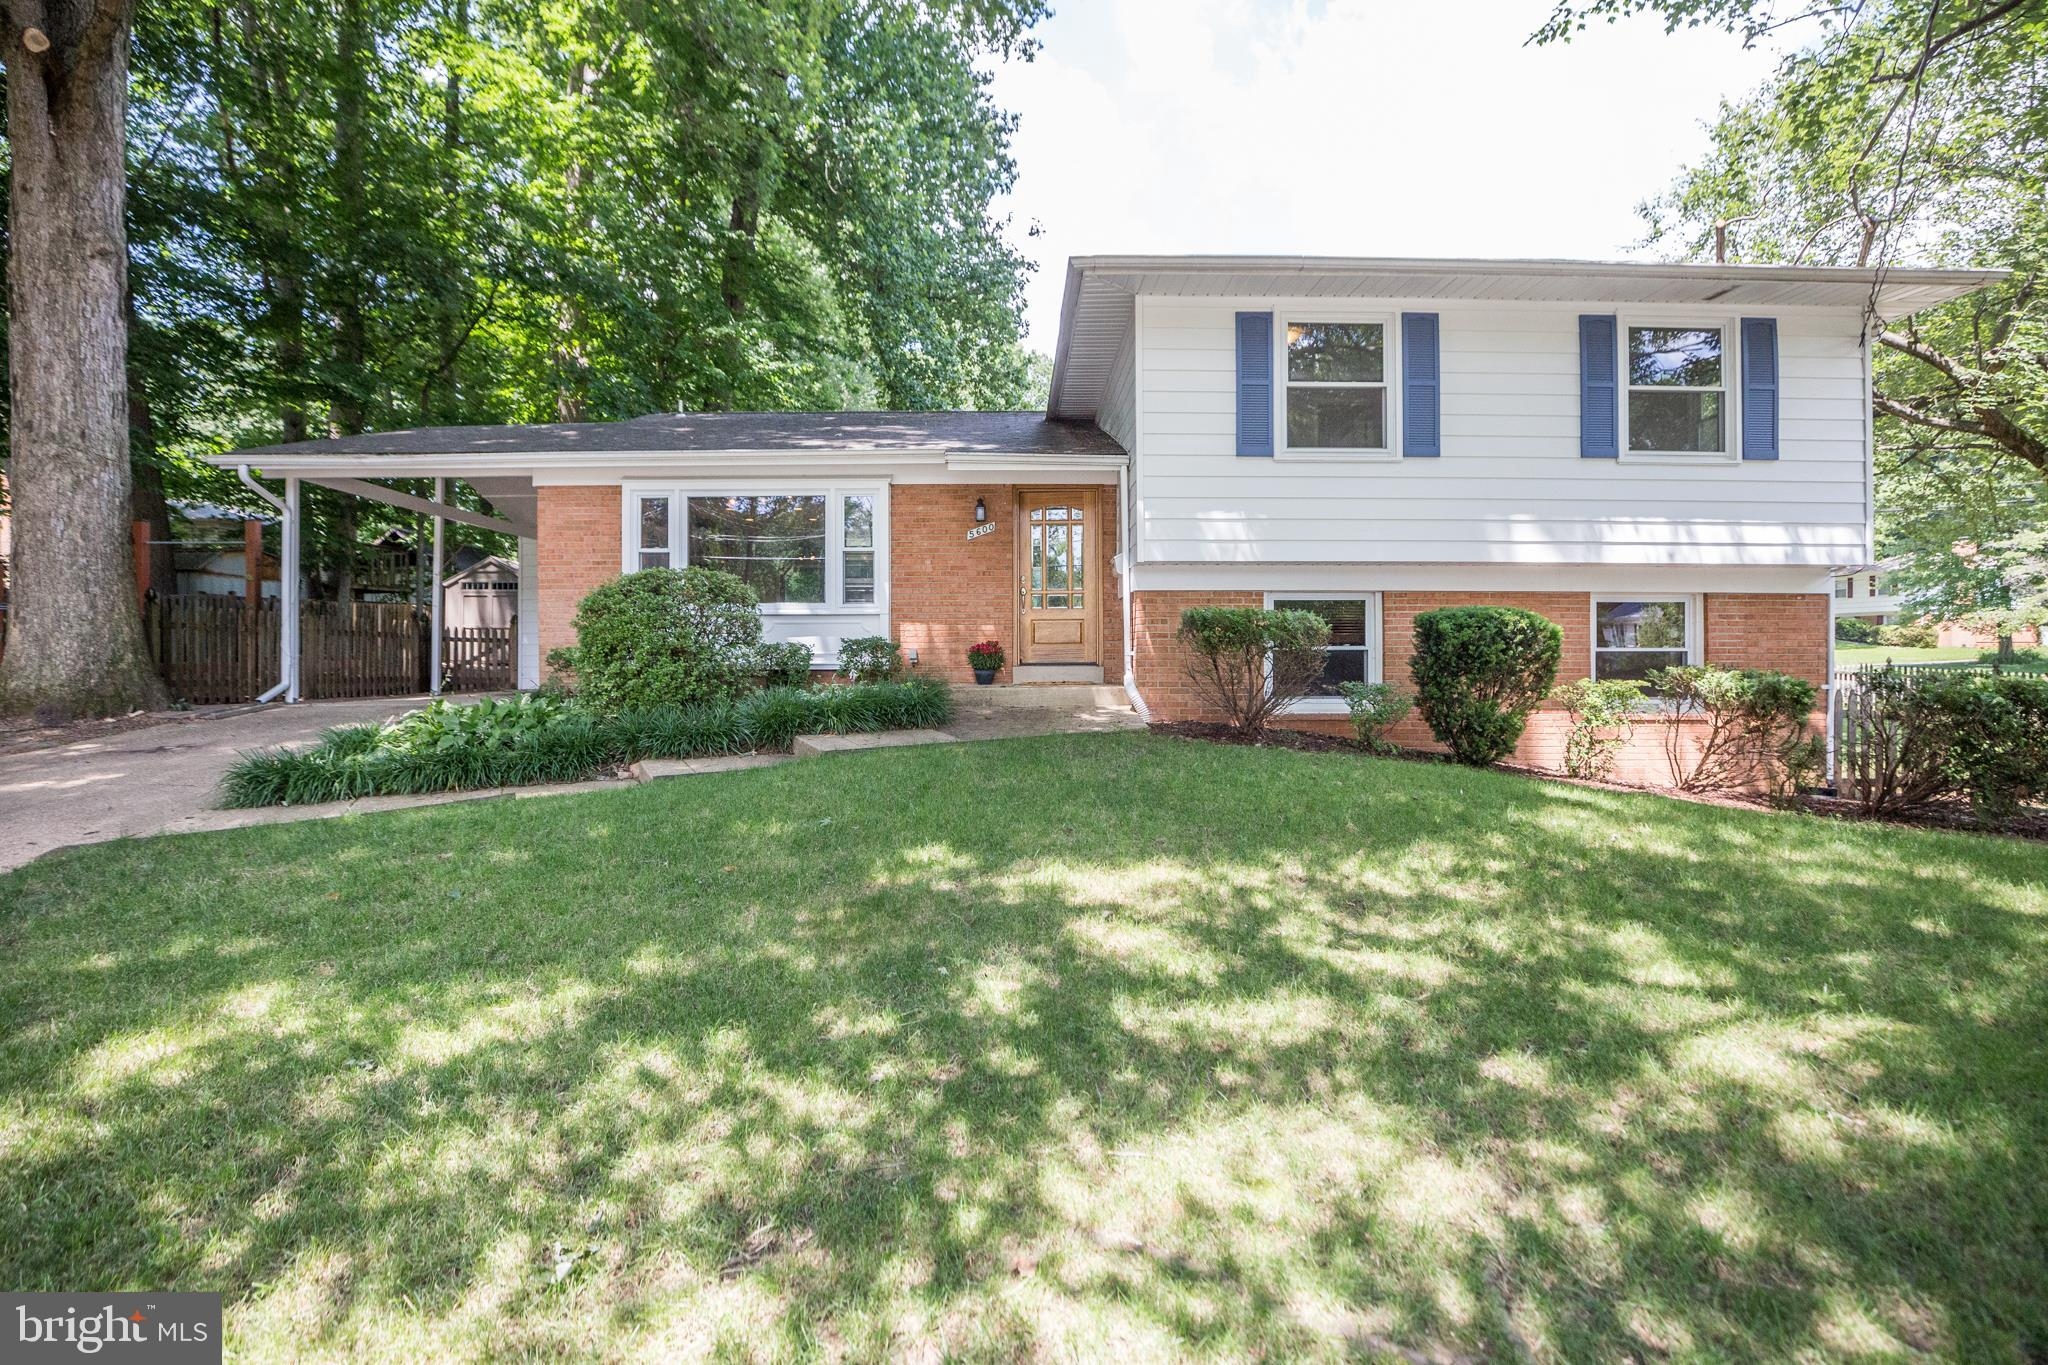 This beautiful single family home with a sought-after ~split level~ floor plan is situated in a great location that allows for quick access to I-395, I-495 HOT lanes and Express bus to the Pentagon. The renovated kitchen on the main level boasts granite countertops, high-end appliances and a breakfast bar for extra cooking prep space and seating/serving space for gatherings. The open kitchen flows into the adjacent sun-bathed living room, eat-in-kitchen and dining area, providing a flexible setting for dinner parties and gatherings. Through sliding doors, the dining area opens up to a large paver patio and backyard, perfect for al fresco dining. A spacious walkout lower level family room with custom built-in shelves, cabinets, crown molding and recessed lighting awaits you. Enjoy the great views of the front and side luscious green lawn as you relax in this room. The fifth bedroom (which can serve as a home office or in-law suite) and full bath are conveniently located on the same level. A short staircase leads you to the upper level where you will find three secondary bedrooms, master bedroom, one full bath and master bath.  Finally, you will be impressed by the outdoor fitness station on the side yard of the almost 1/3 acre corner lot. Don't miss the opportunity to own this fully renovated home with high end finishes, fresh paint, refinished hardwood floors, custom closets, large paver patio, two sheds, carport, energy efficient upgrades to insulation, and newly insulated/conditioned crawl space. Not to mention, quick access to miles of trails, Lake Accotink Park, and two large recreation centers! Zoned to Lake Braddock Secondary School.  Other home highlights: - Newer sewer line from house to street in 2006. - Newer sewer line under lower level bedroom in 2014. - Upper level bathrooms, kitchen and basement were all gutted to studs, insulated and reconstructed. - Attached shed roof was replaced with a flat roof membrane approximately 3-4 years ago. - Verizon Fios equipment ready for use in the lower level. - Close to grocery stores and other conveniences. - Wakefield Farmers Market approximately 1.7 miles from home.